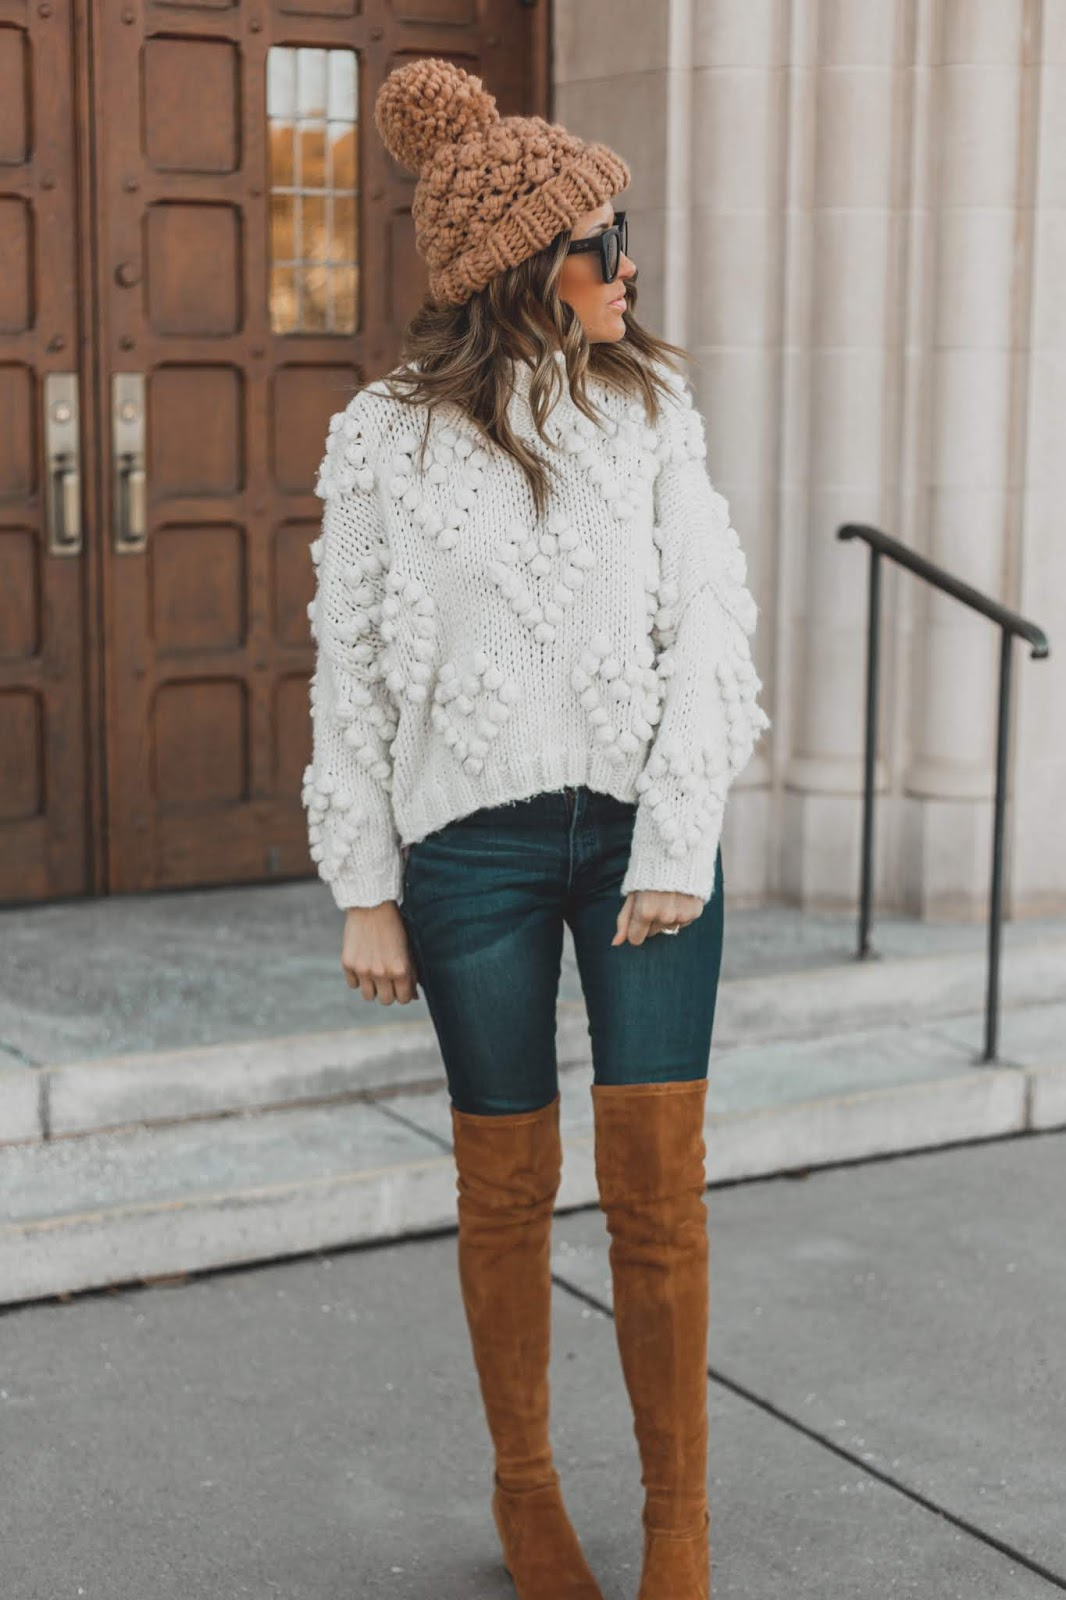 Knit Pom Beanie With White Sweater and OTK Boots